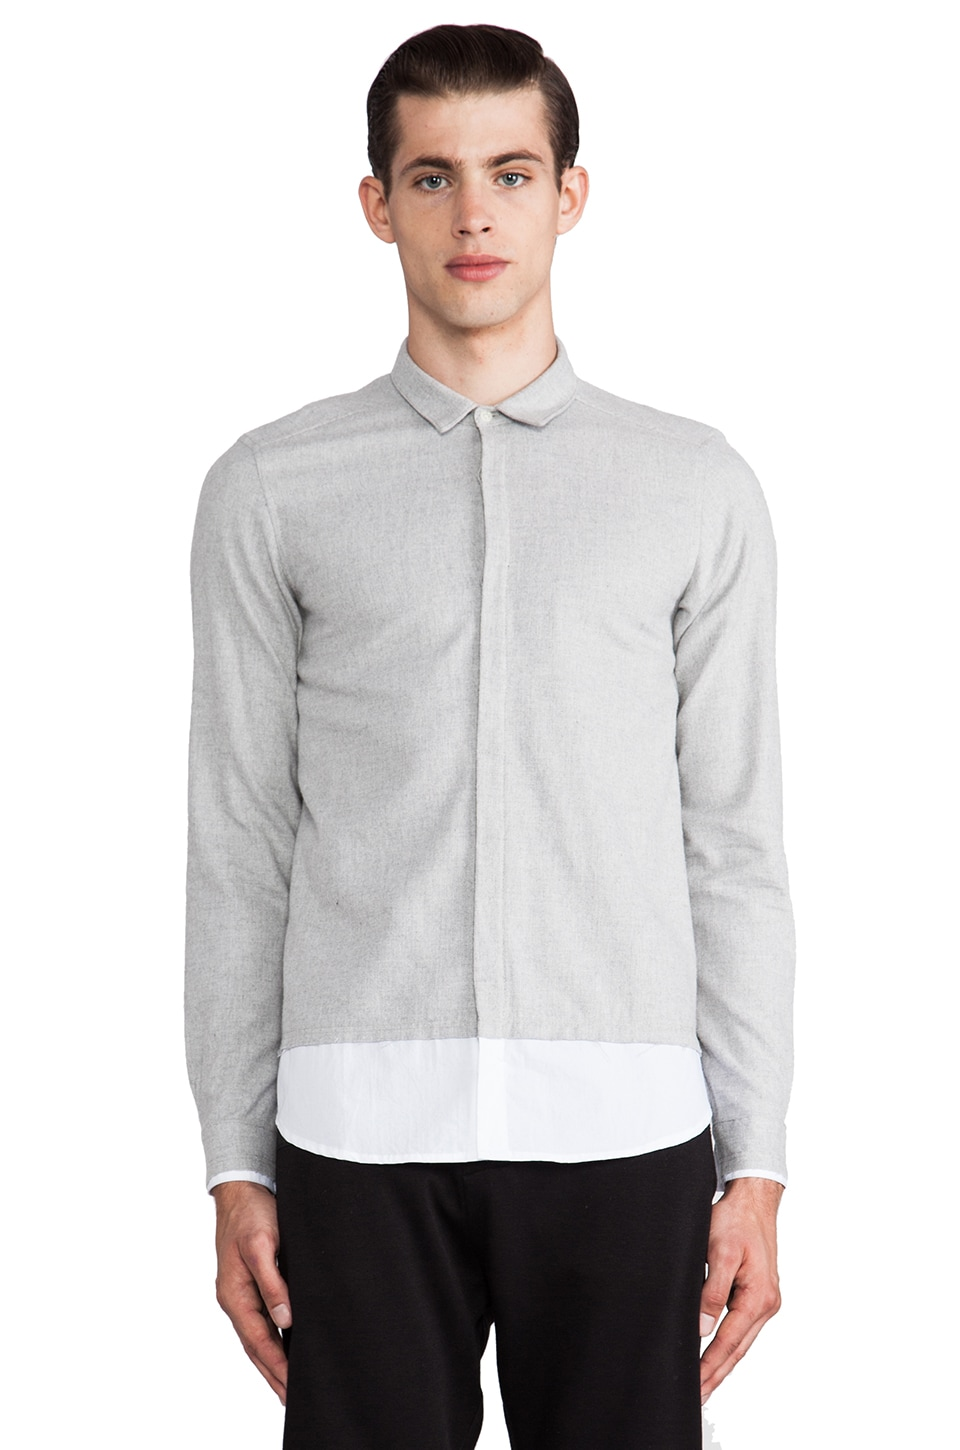 Post Bellum Distressed CB Button Down in White/Grey